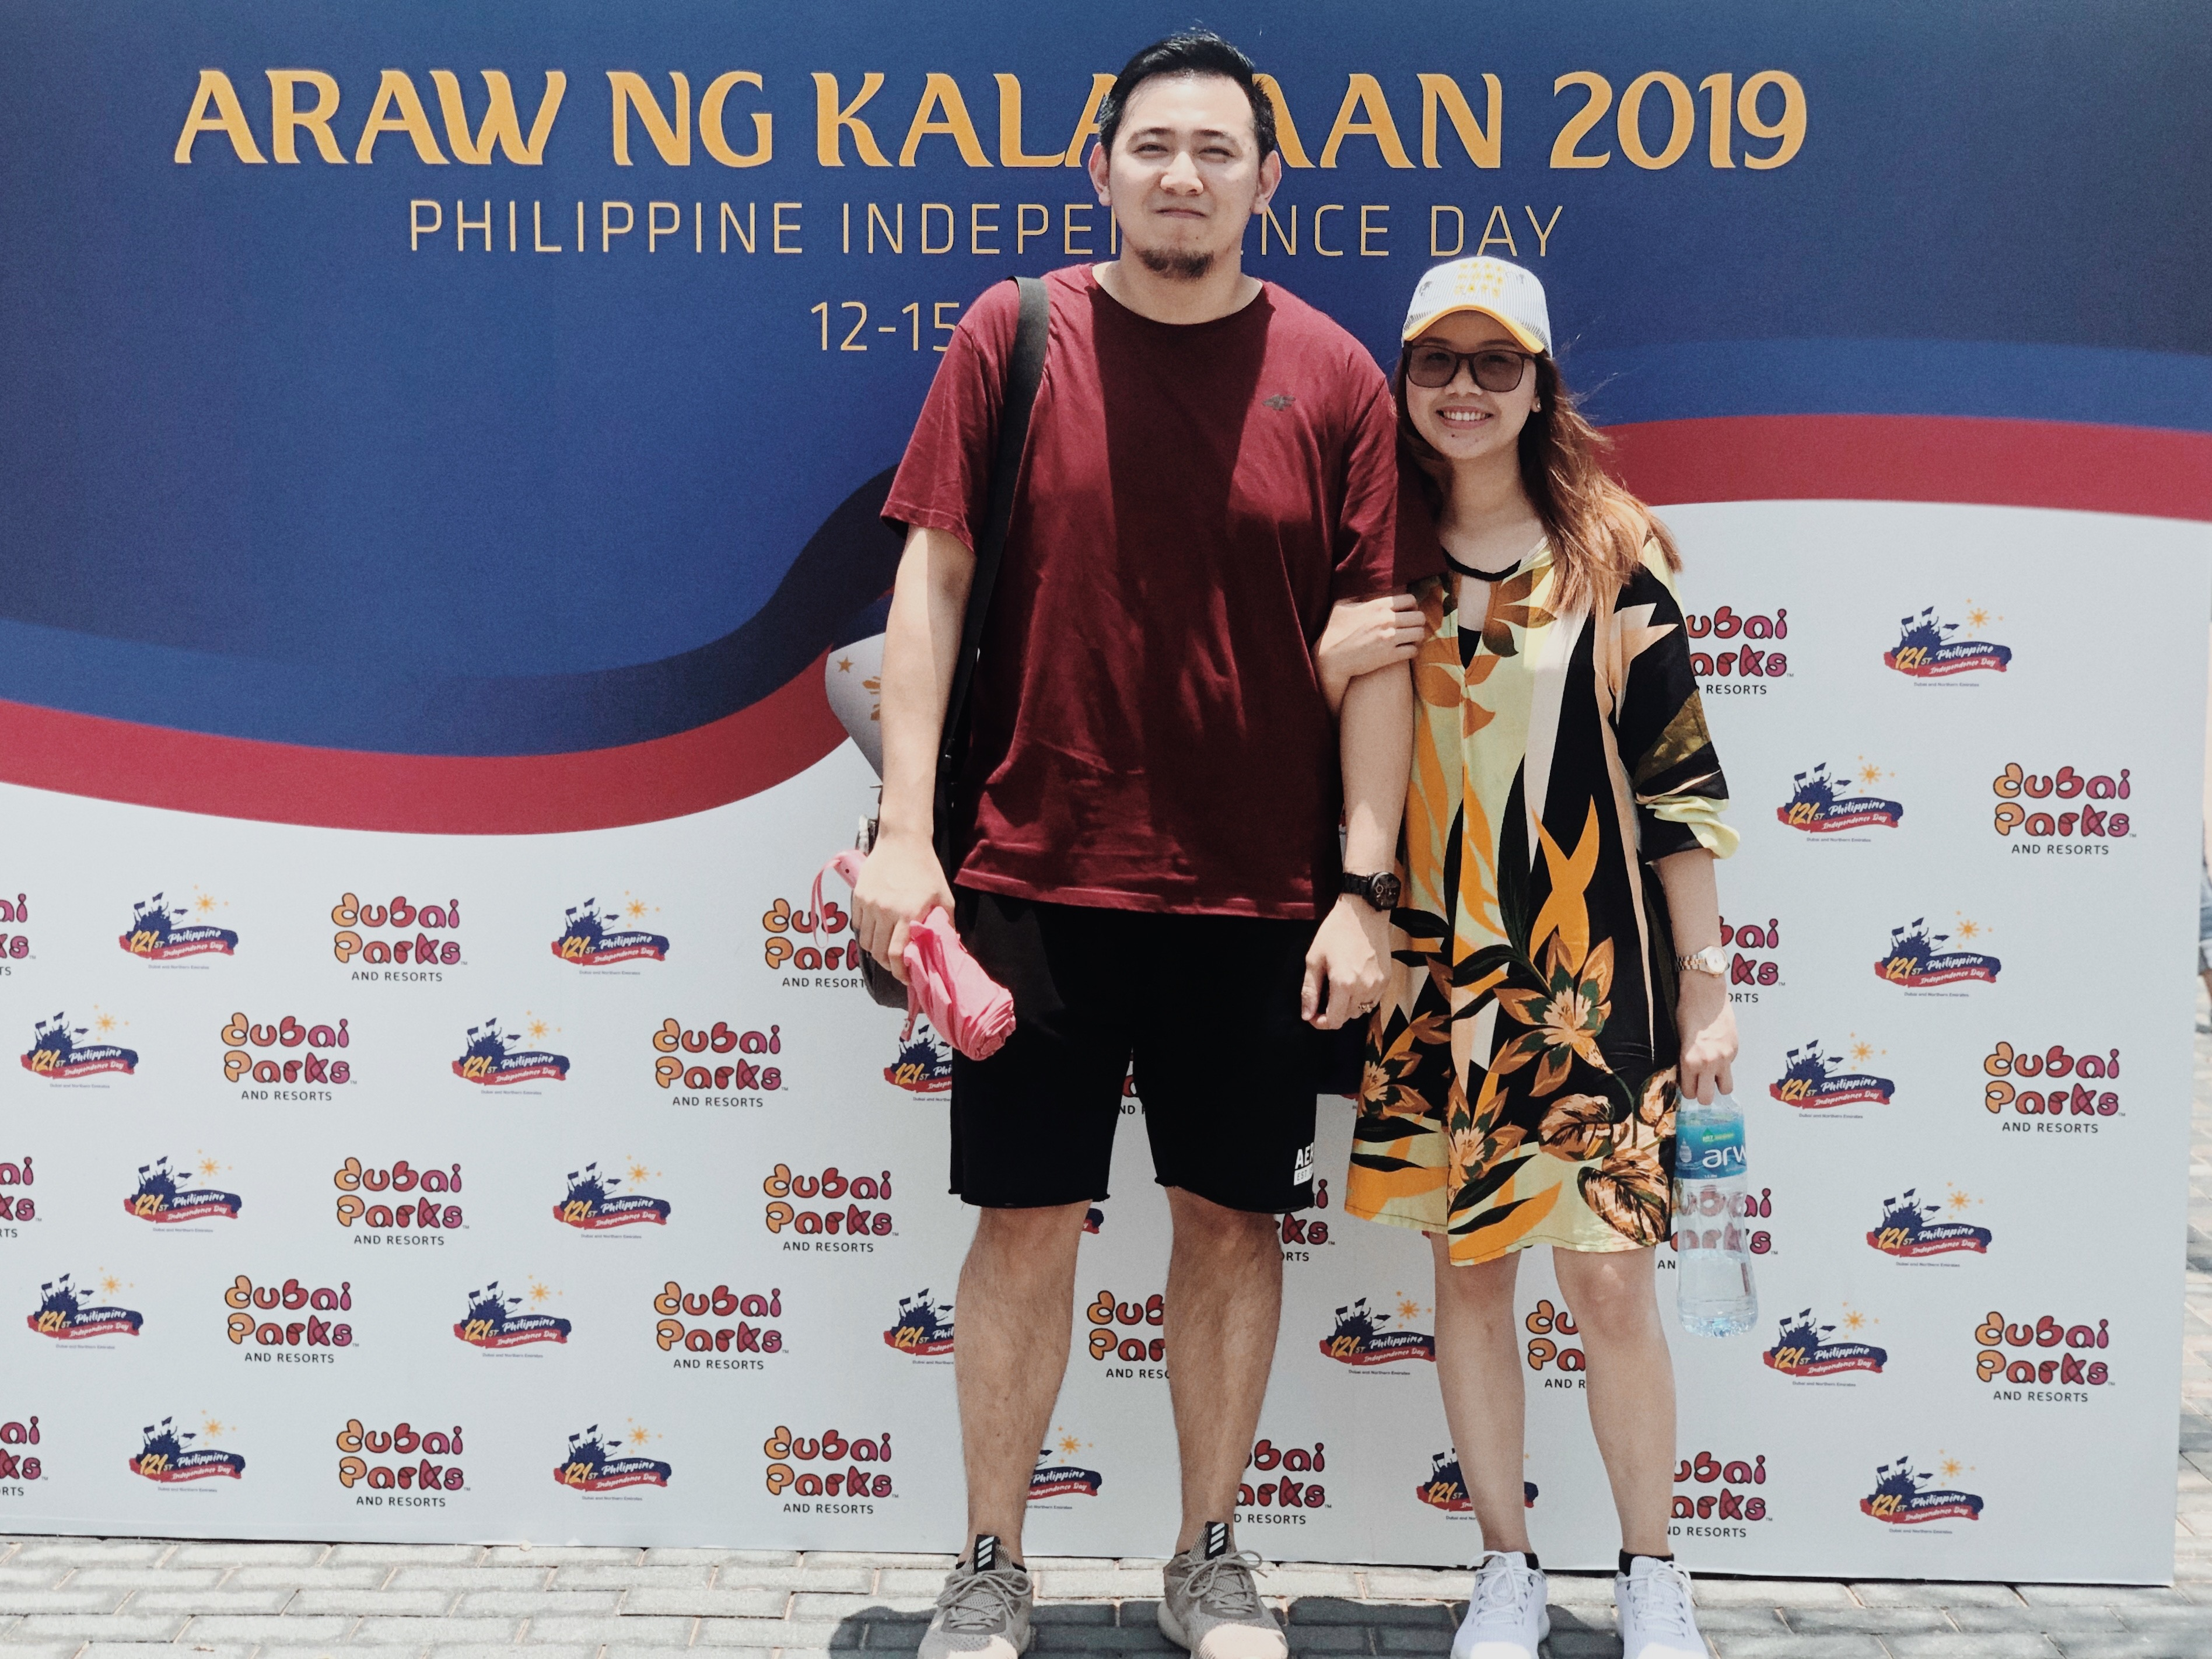 Philippine Independence Day 2019